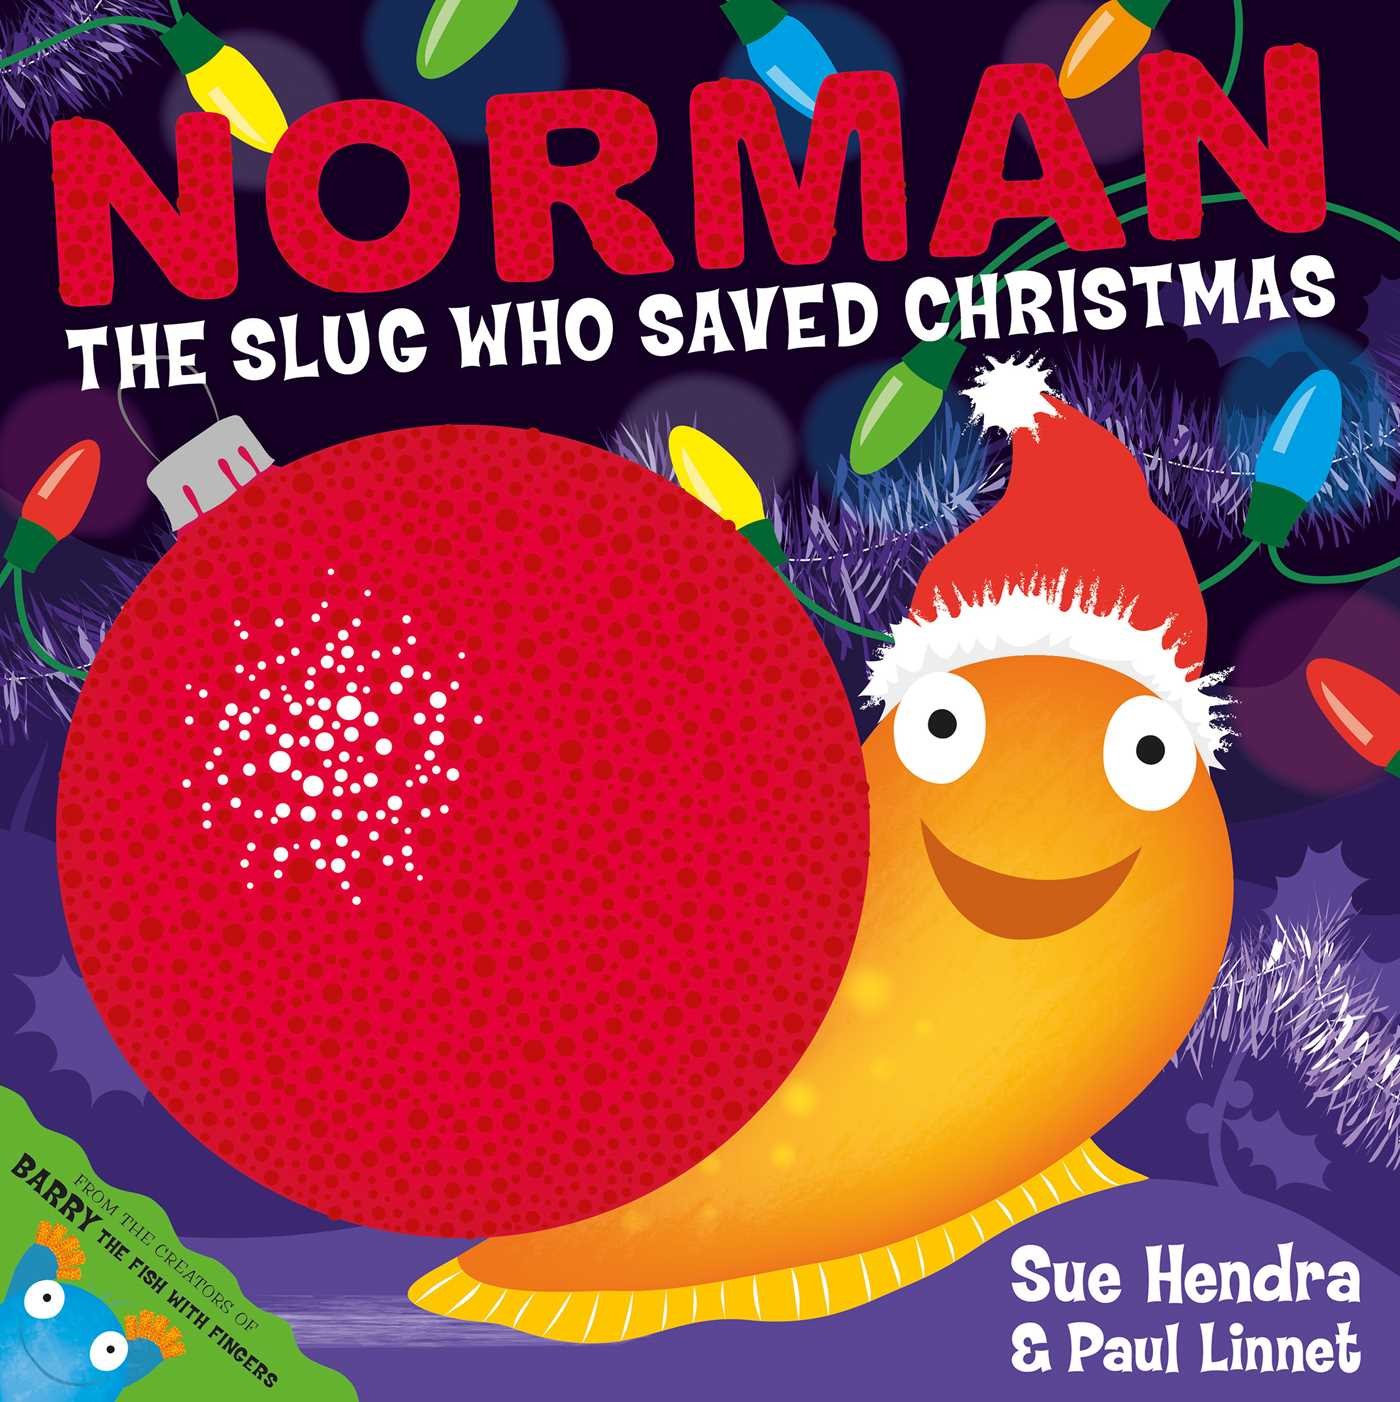 Book Cover Image (jpg): Norman The Slug Who Saved Christmas Ebook  9781471120992